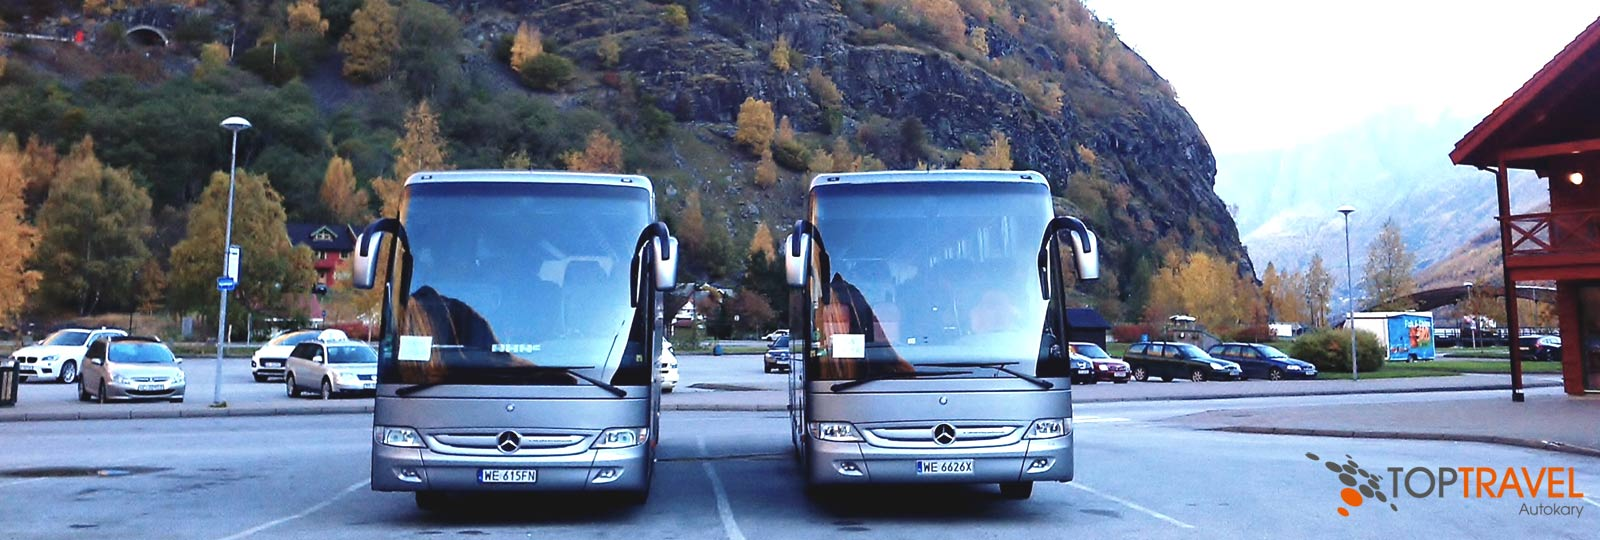 TOP TRAVEL Luksusowe autokary Mercedes Tourismo